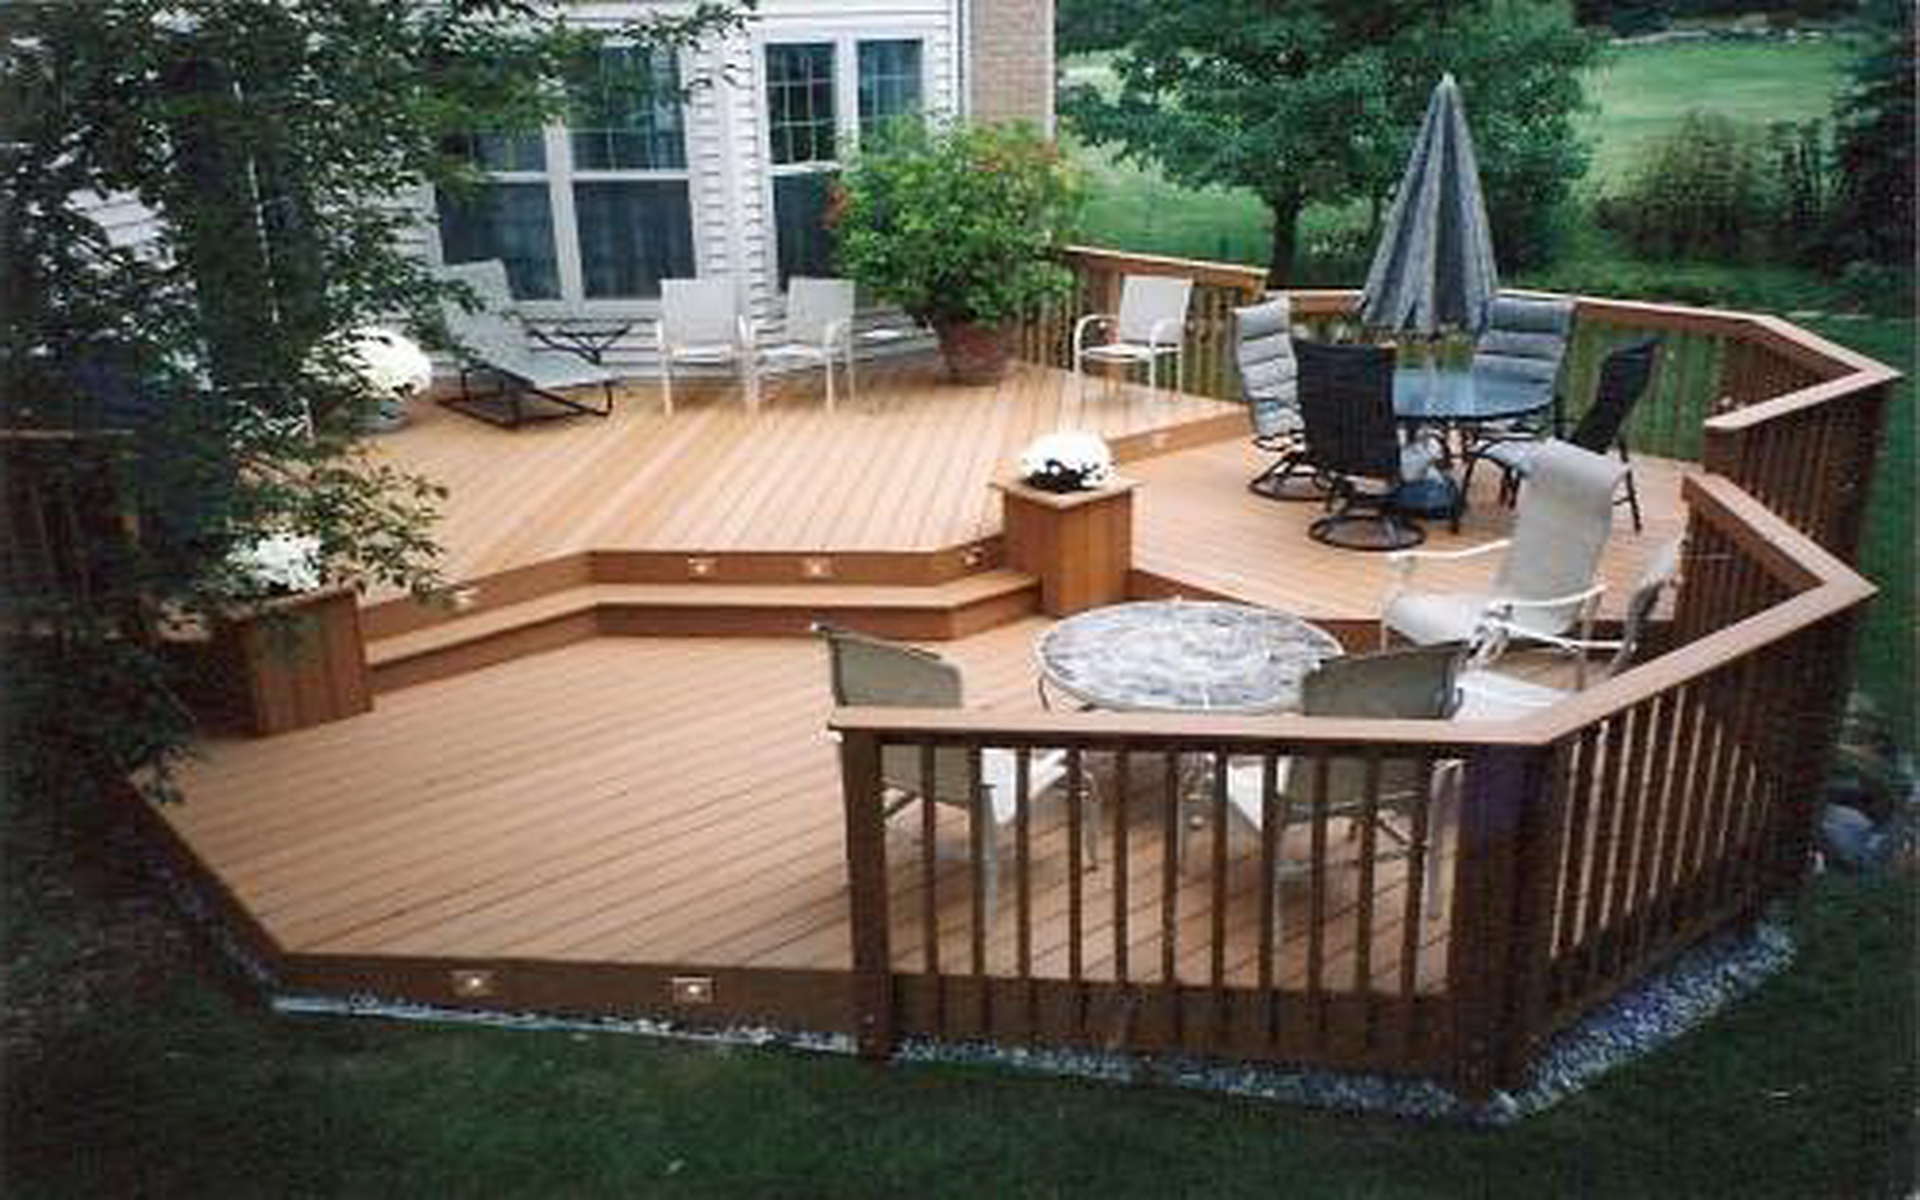 28 truly awesome wooden deck designs for your home Small deck ideas